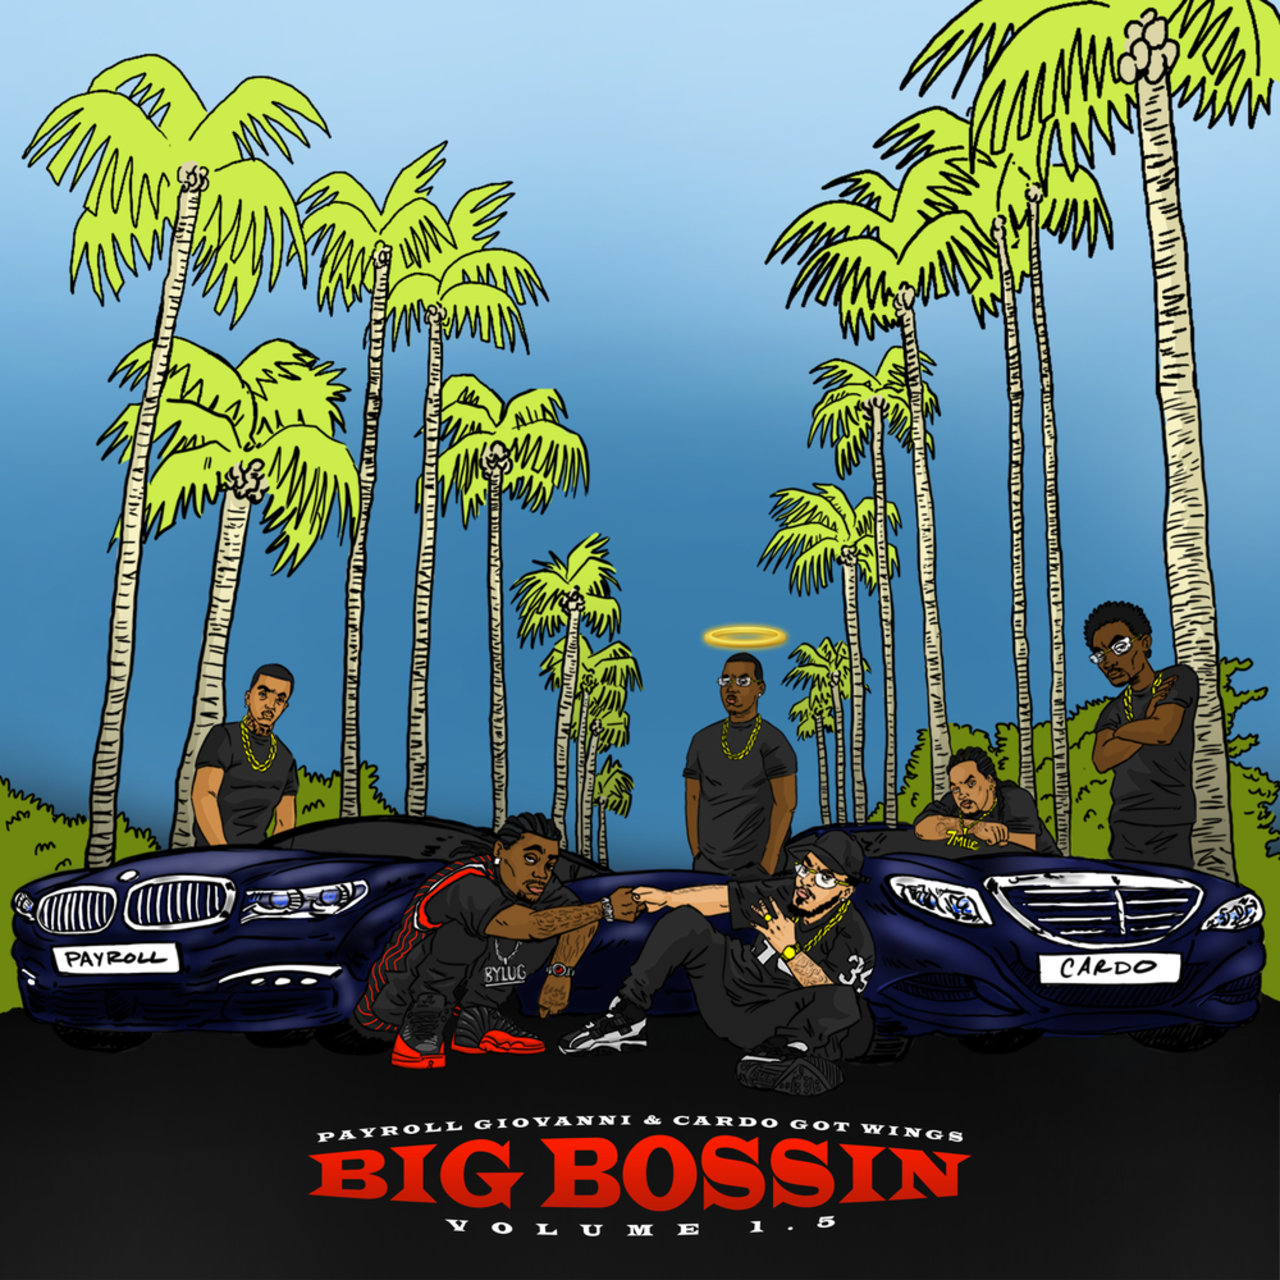 Big Bossin Vol. 1.5